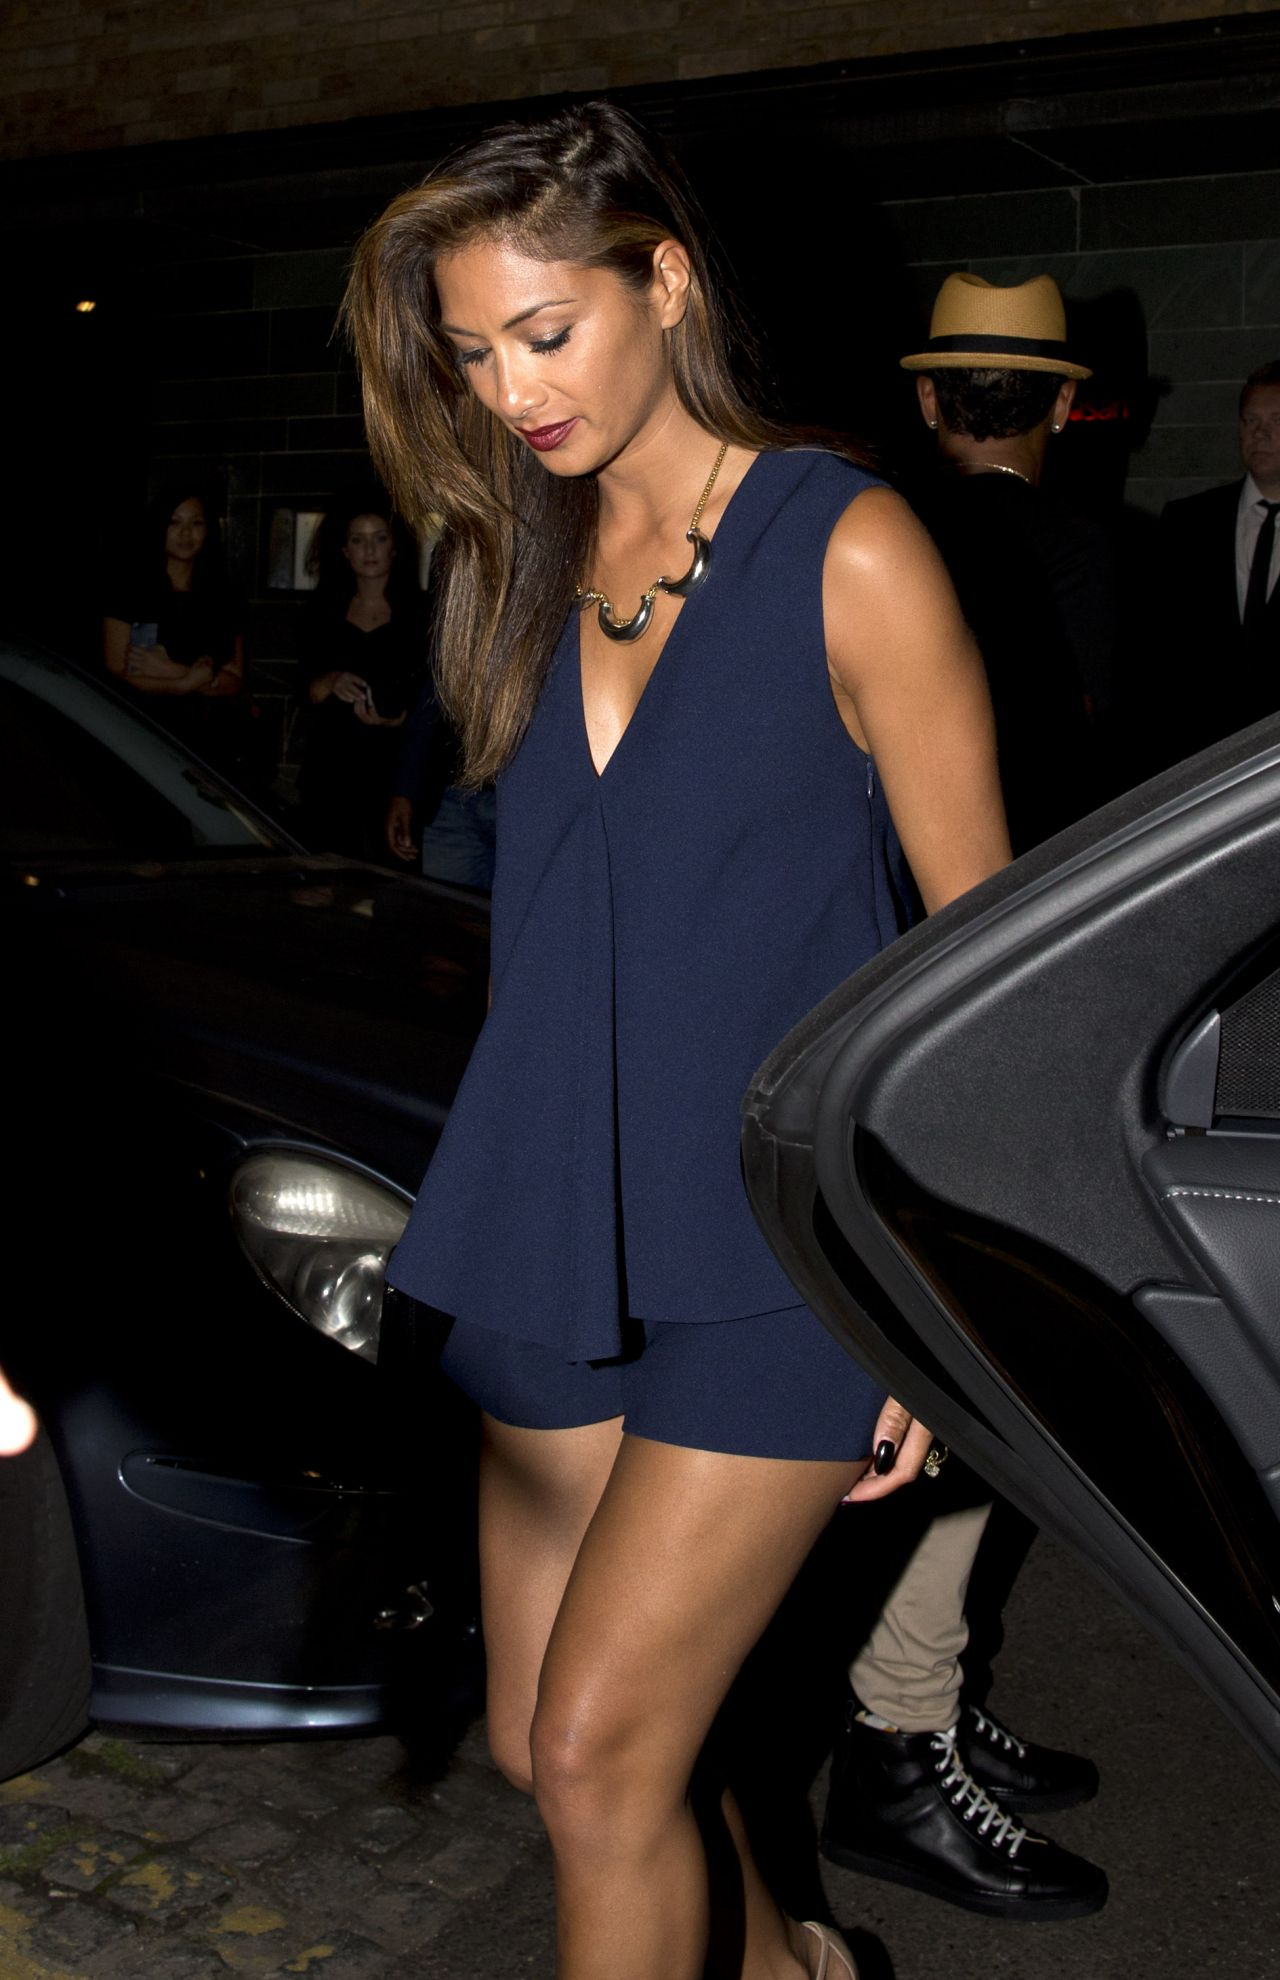 Nicole Scherzinger Night Out Style - Leaving Hakkasan Restaurant in London - September 2014